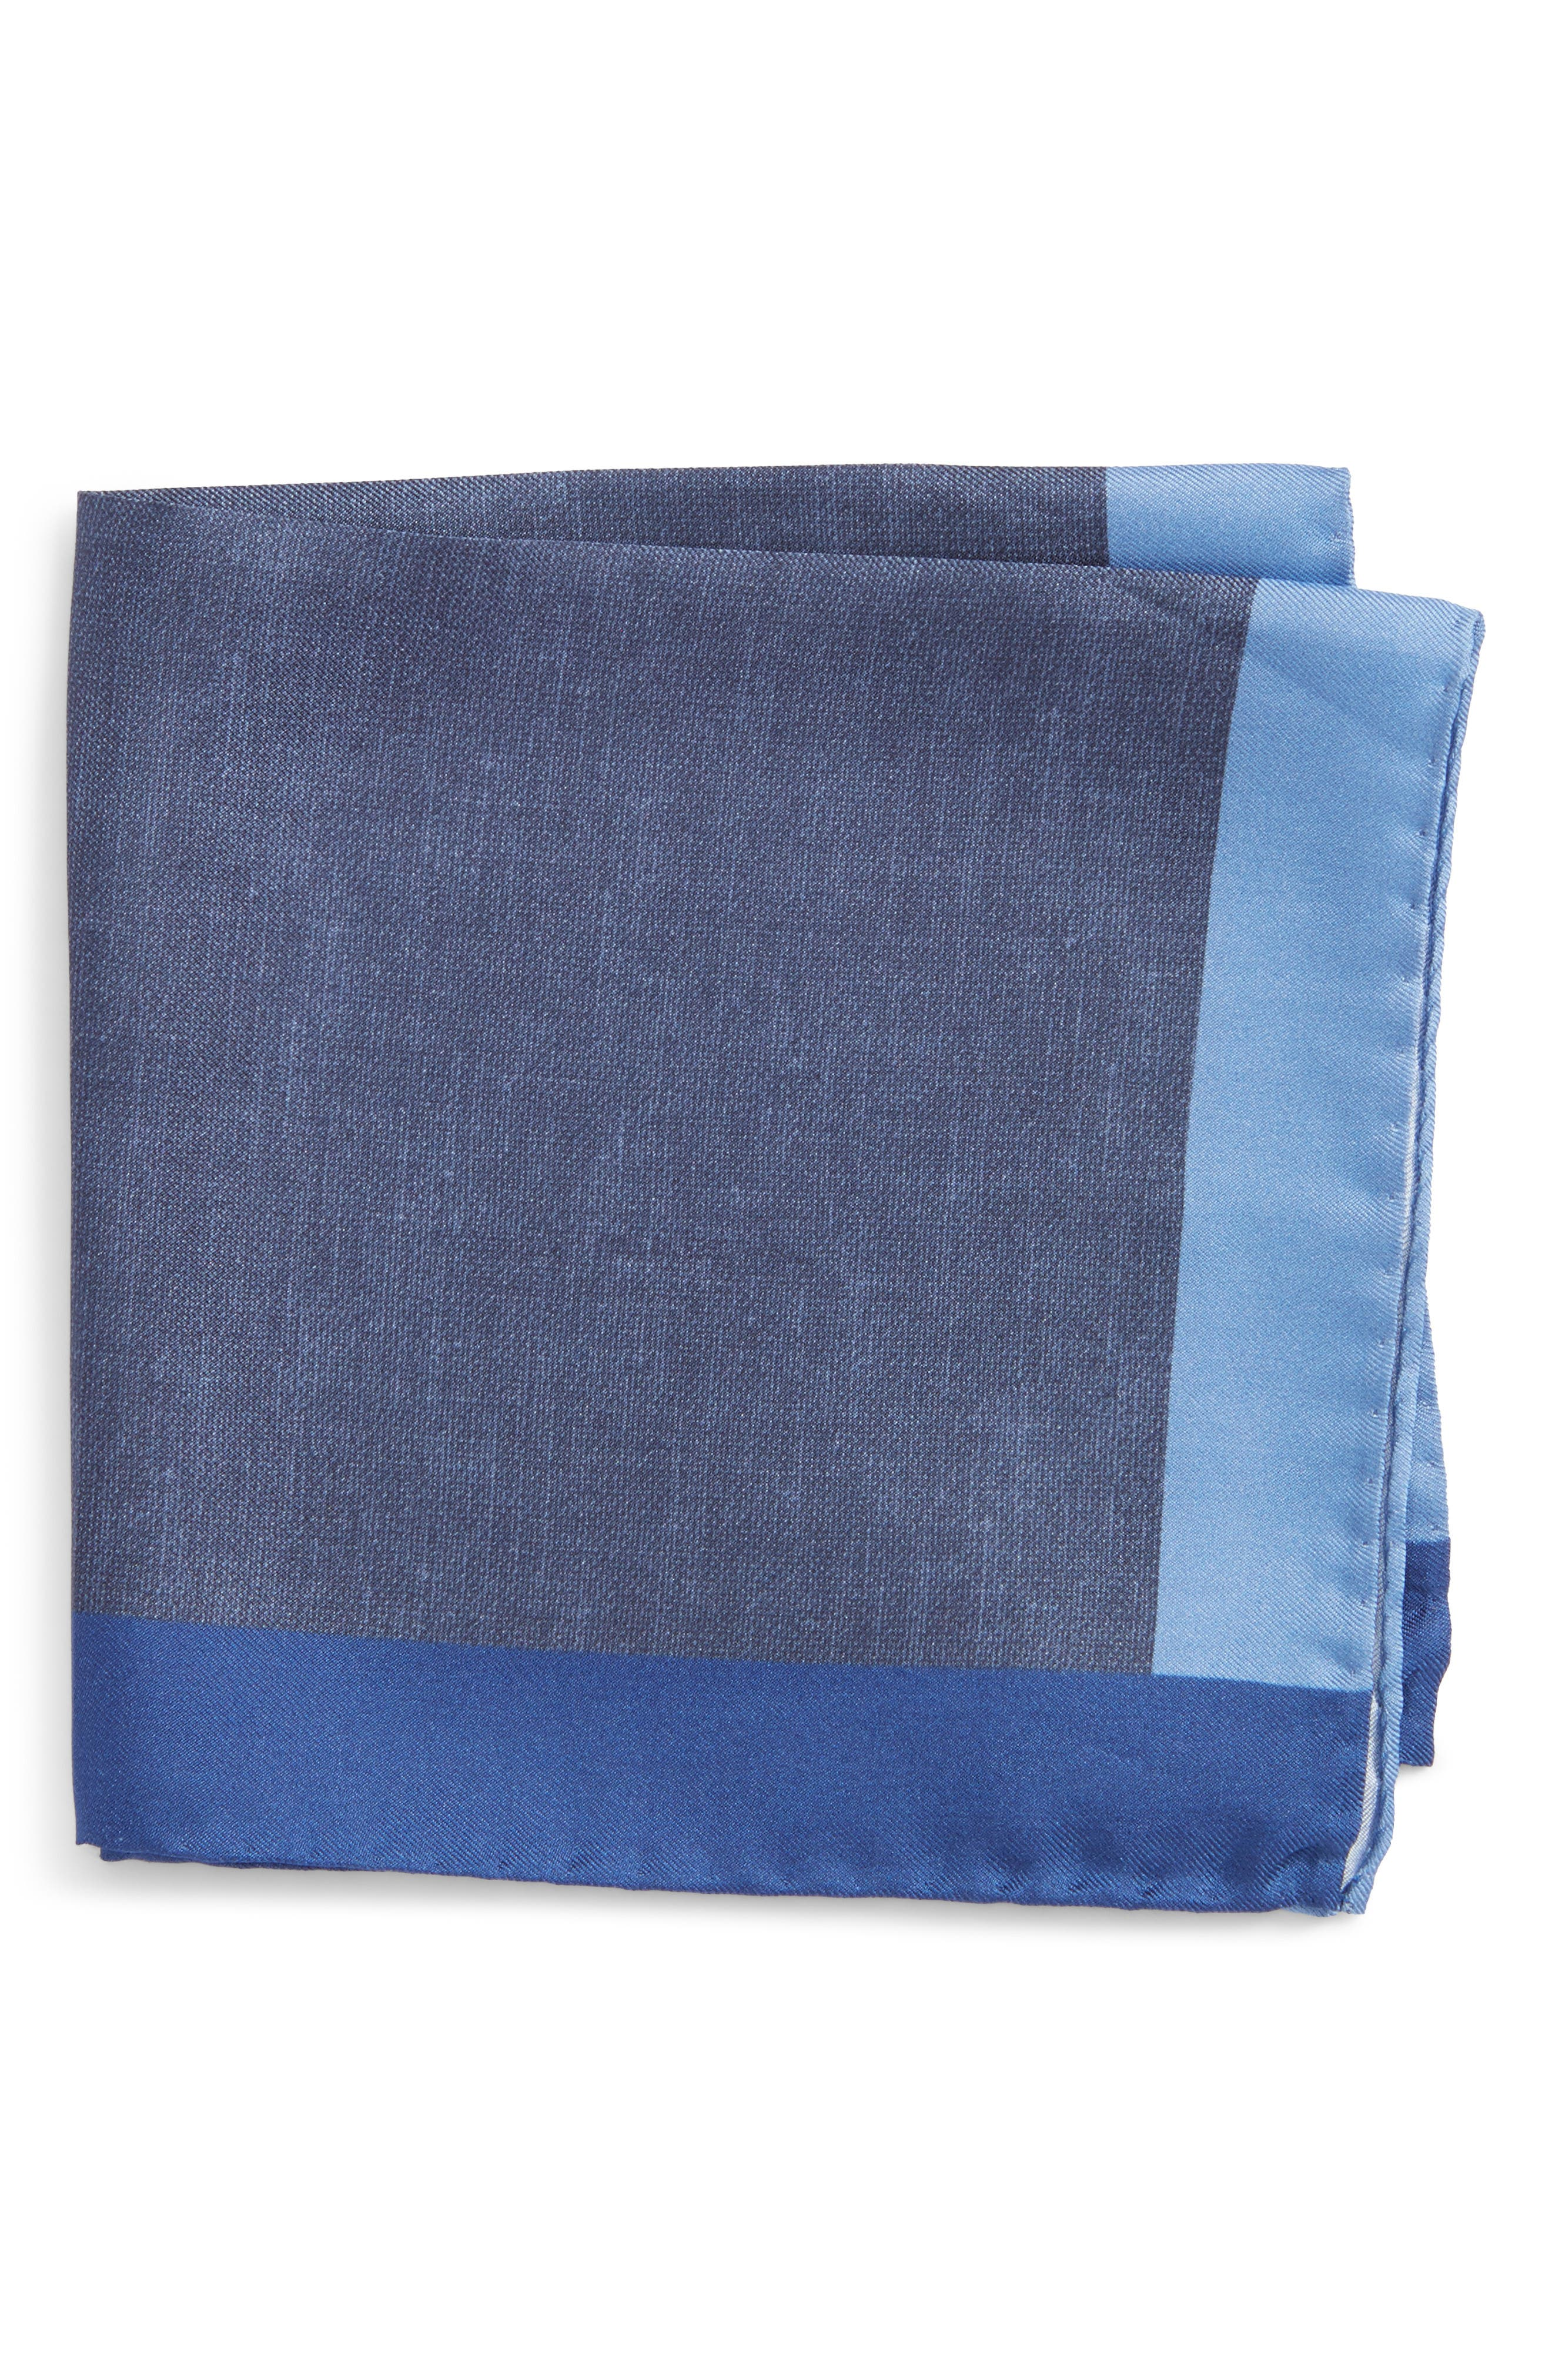 Nordstrom x BOSS Exclusive Silk Pocket Square,                         Main,                         color, Blue